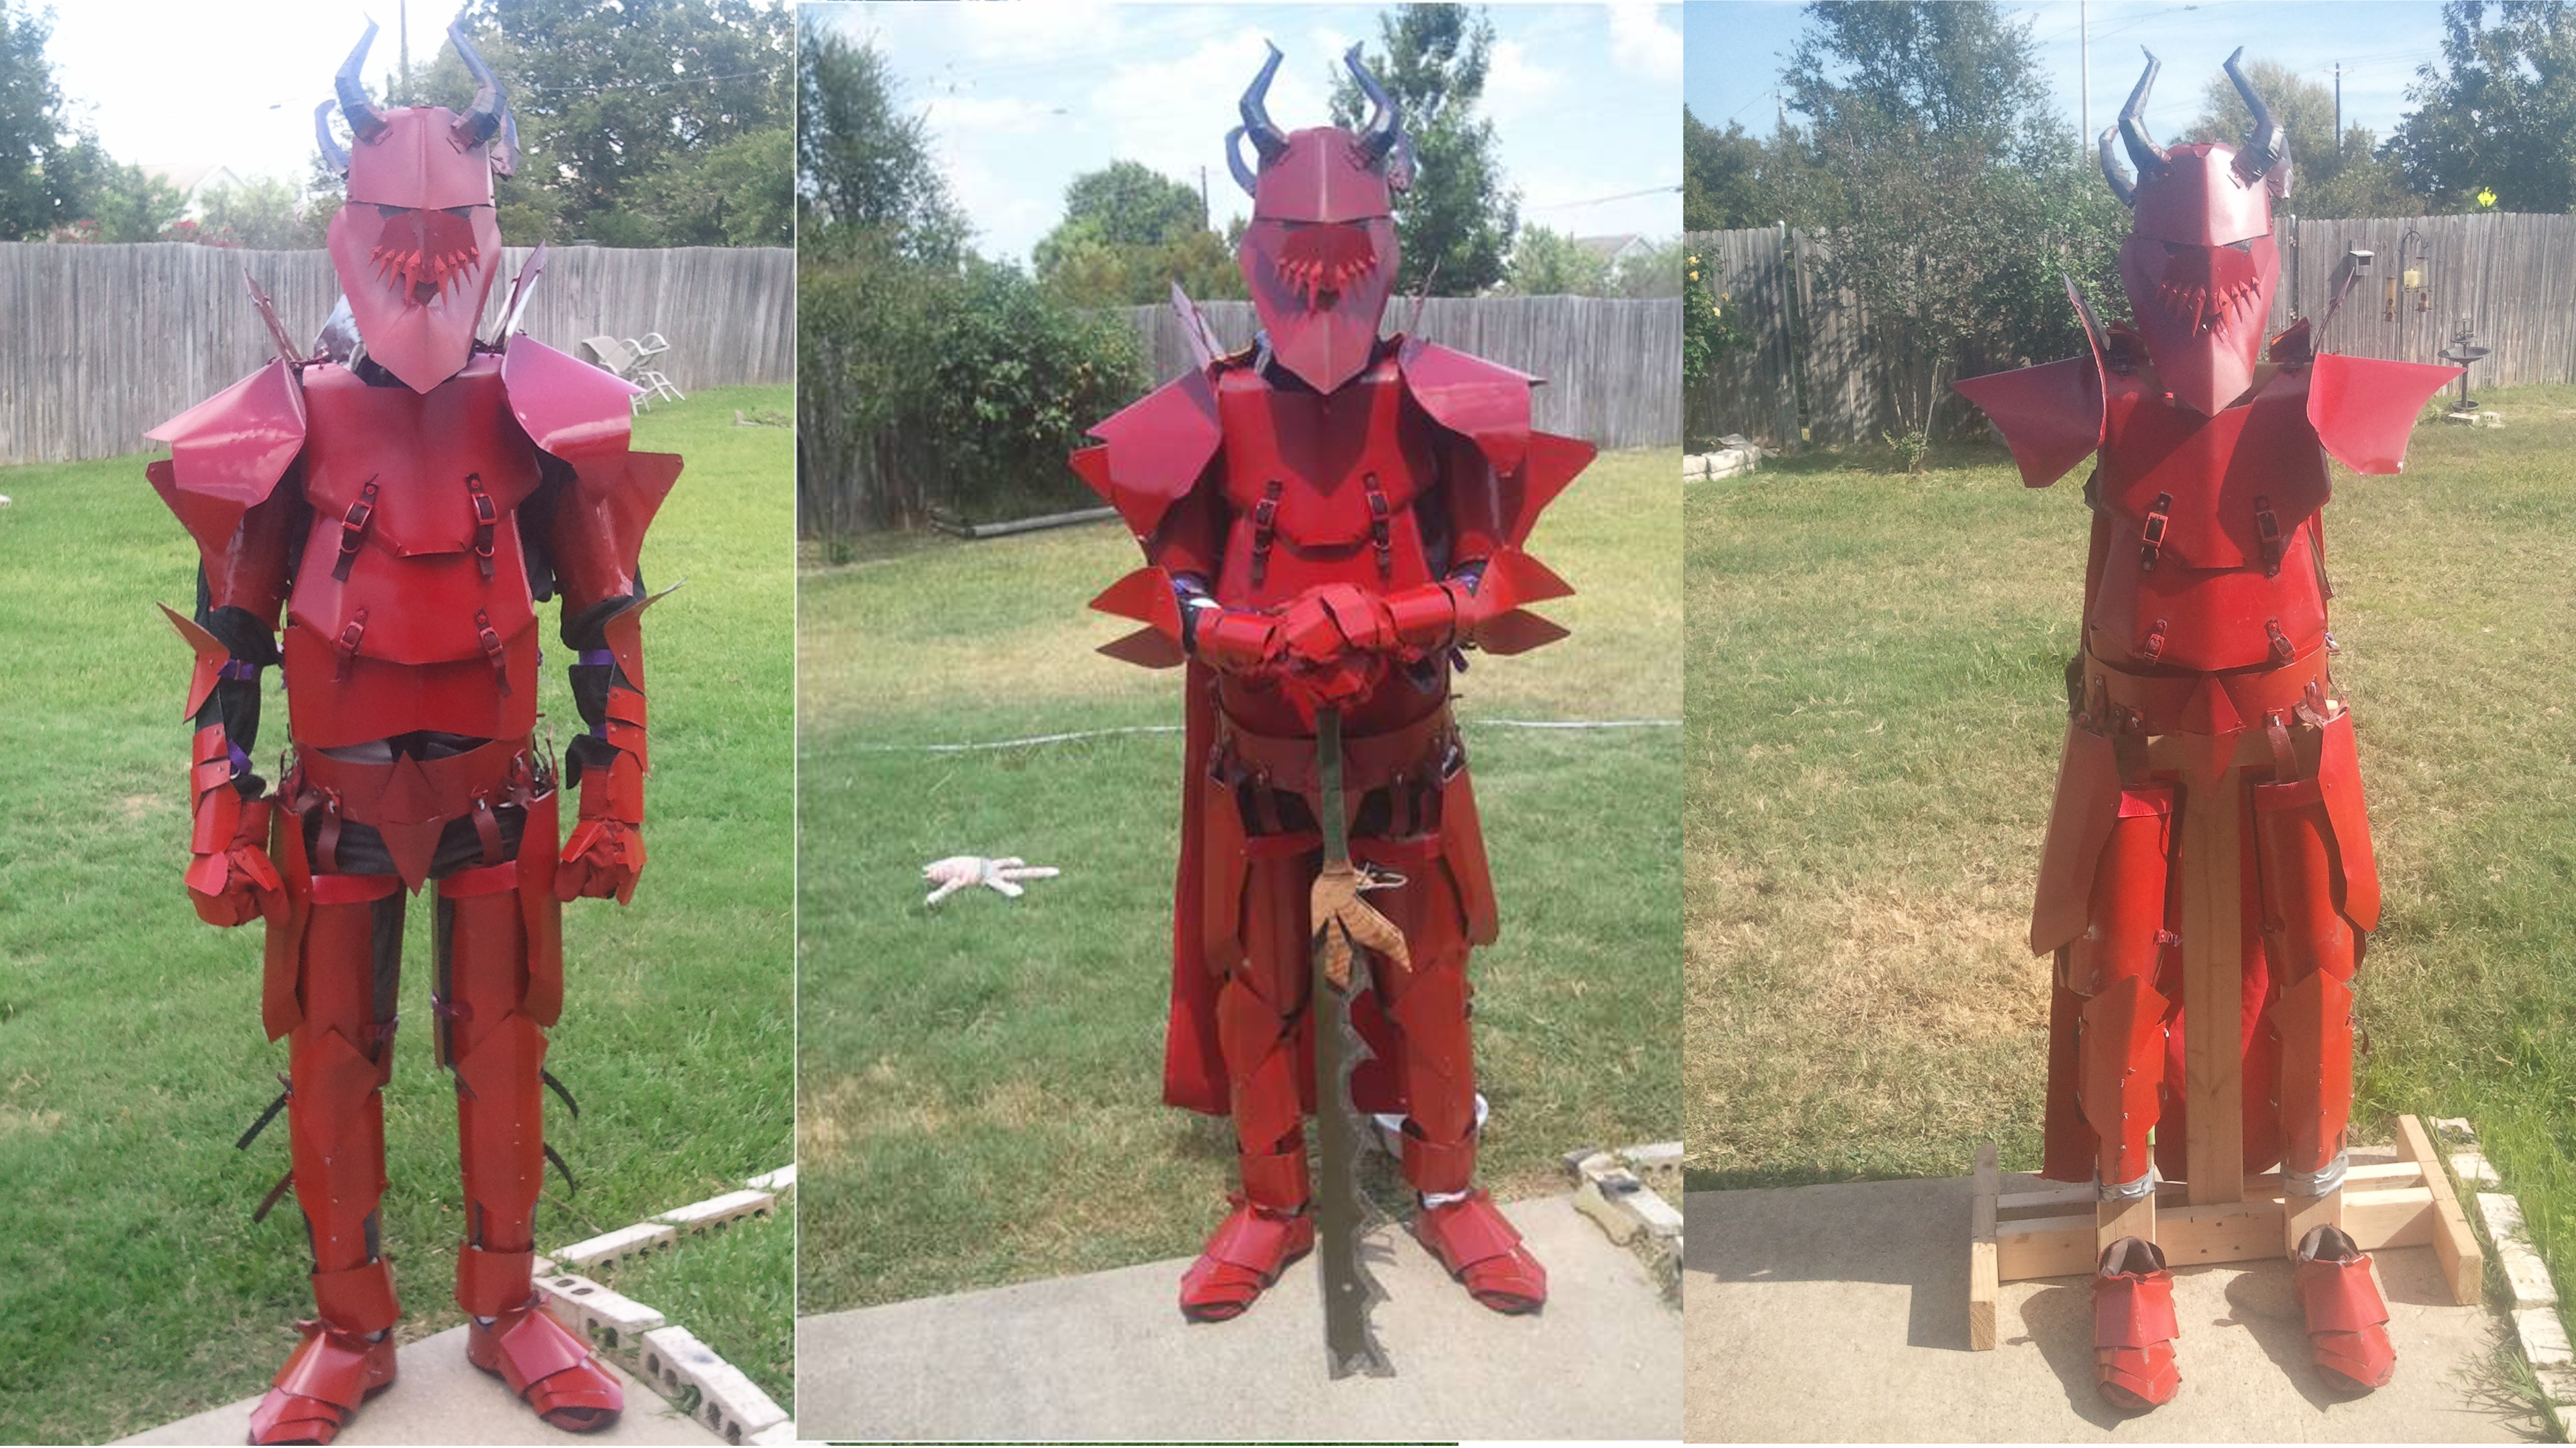 Dragon Armor Full By Deviationanonymous On Deviantart See more ideas about dragon armor, dracula untold, armor. dragon armor full by